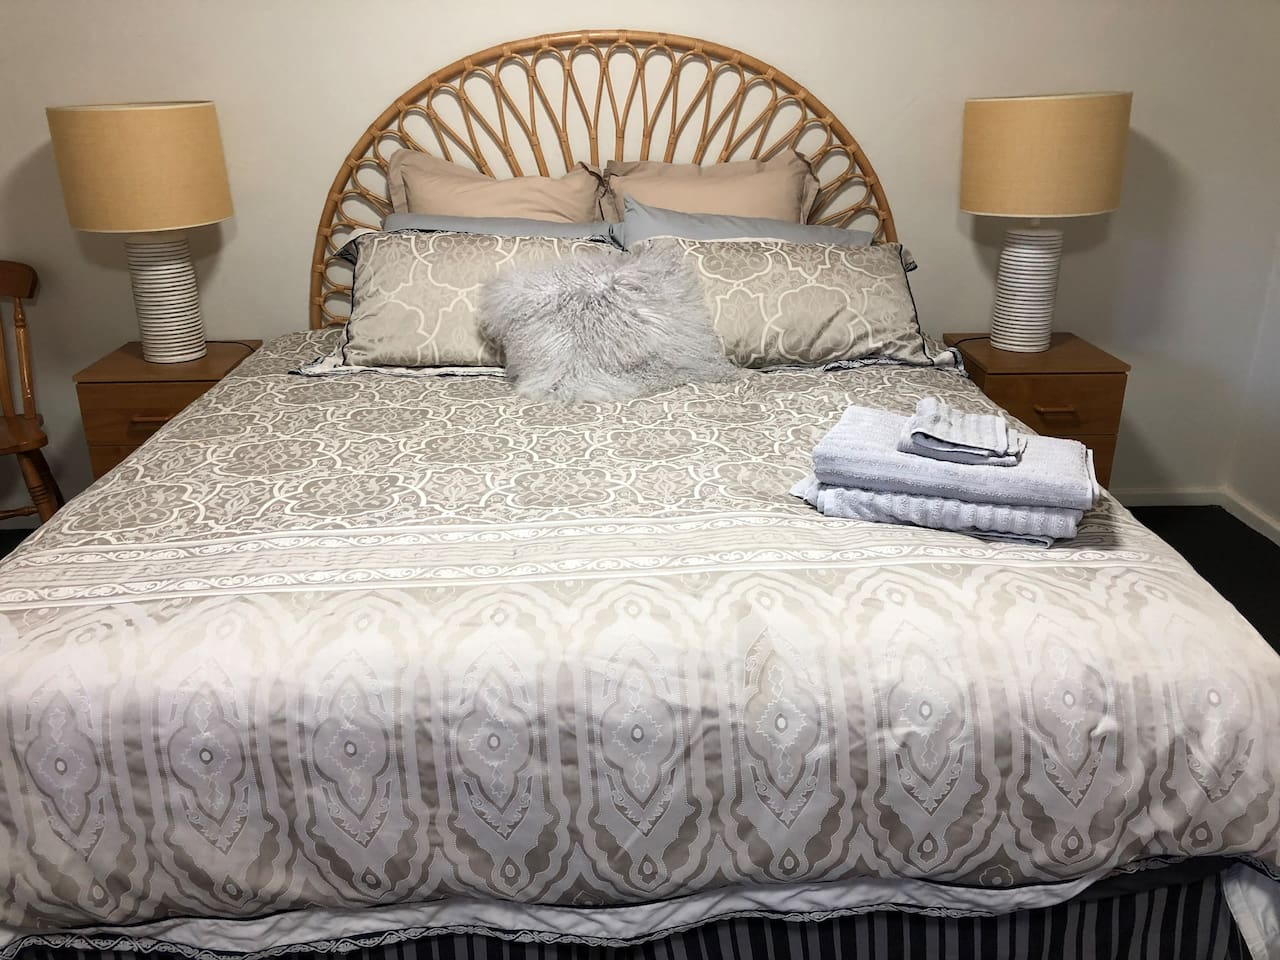 A king size bed with a brand new quality mattress will guarantee a comfortable sleep.